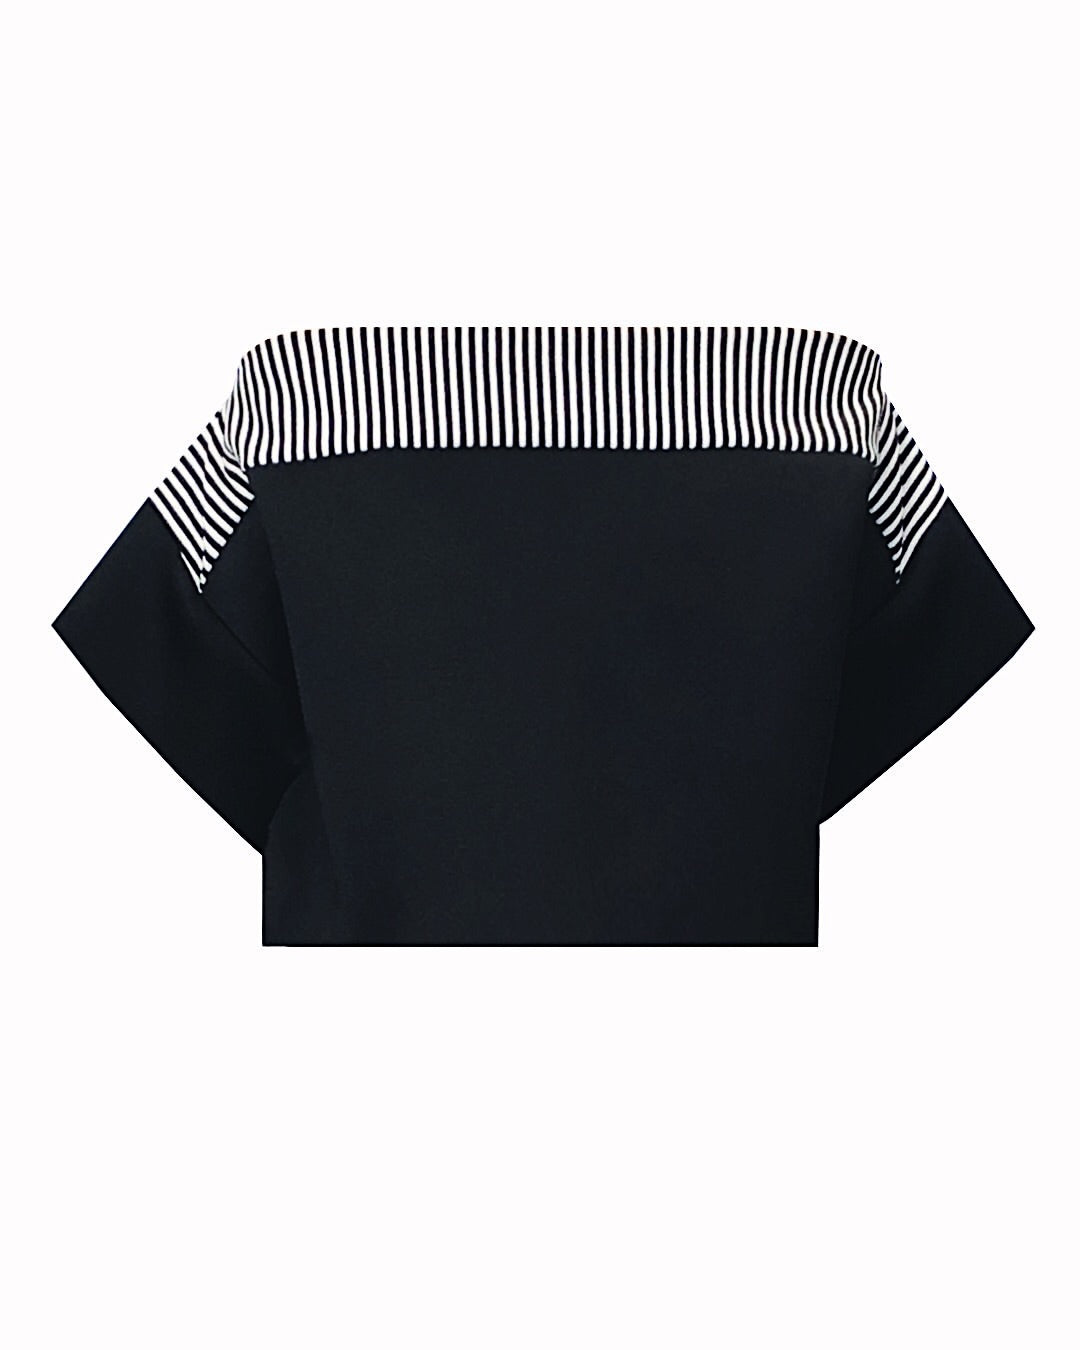 Black top with black and white striped piano effect detail